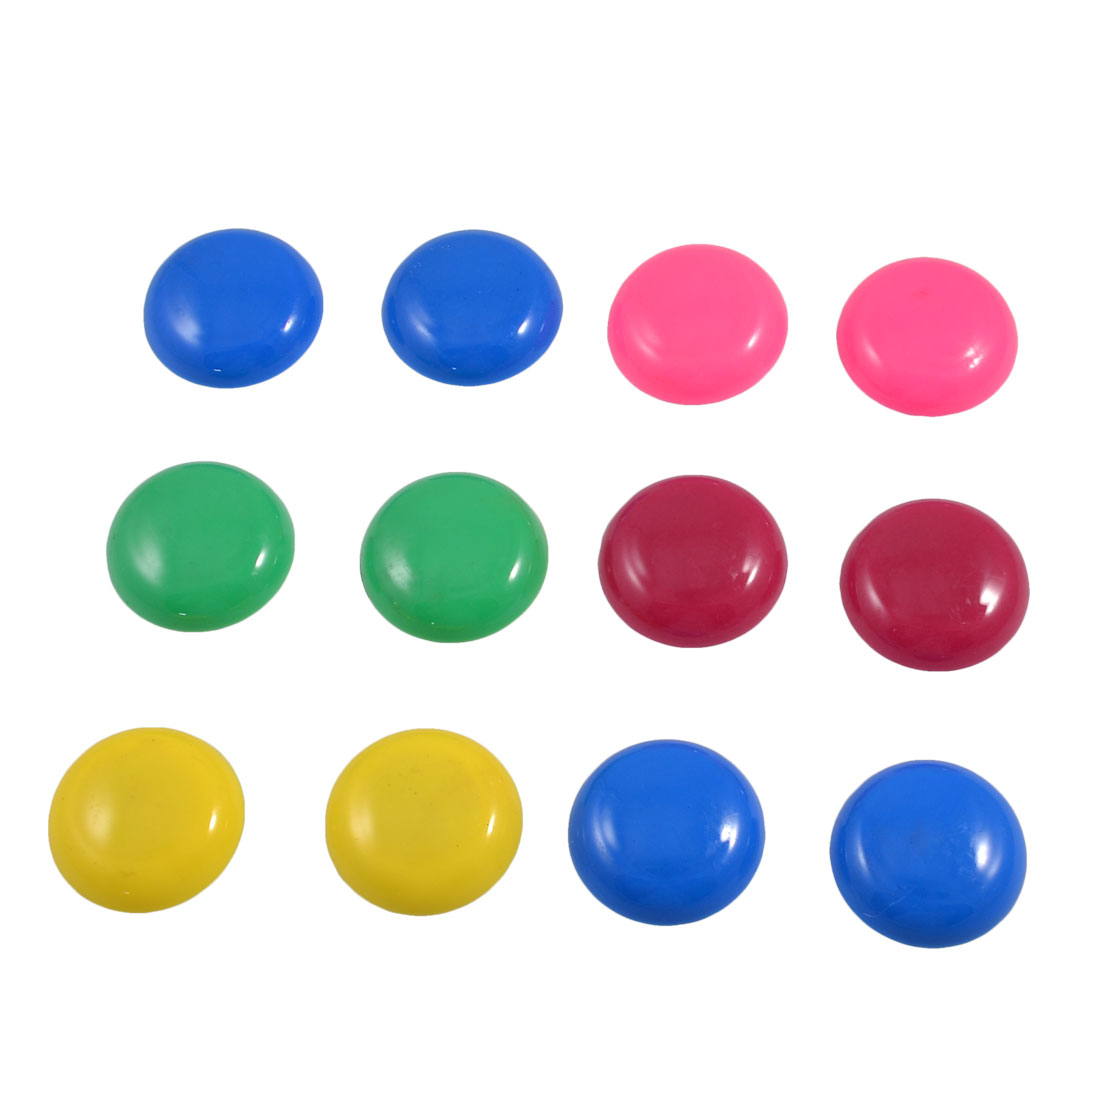 12 Pcs Assorted Colors Plastic White Board Refrigerator Magnets 1.2""